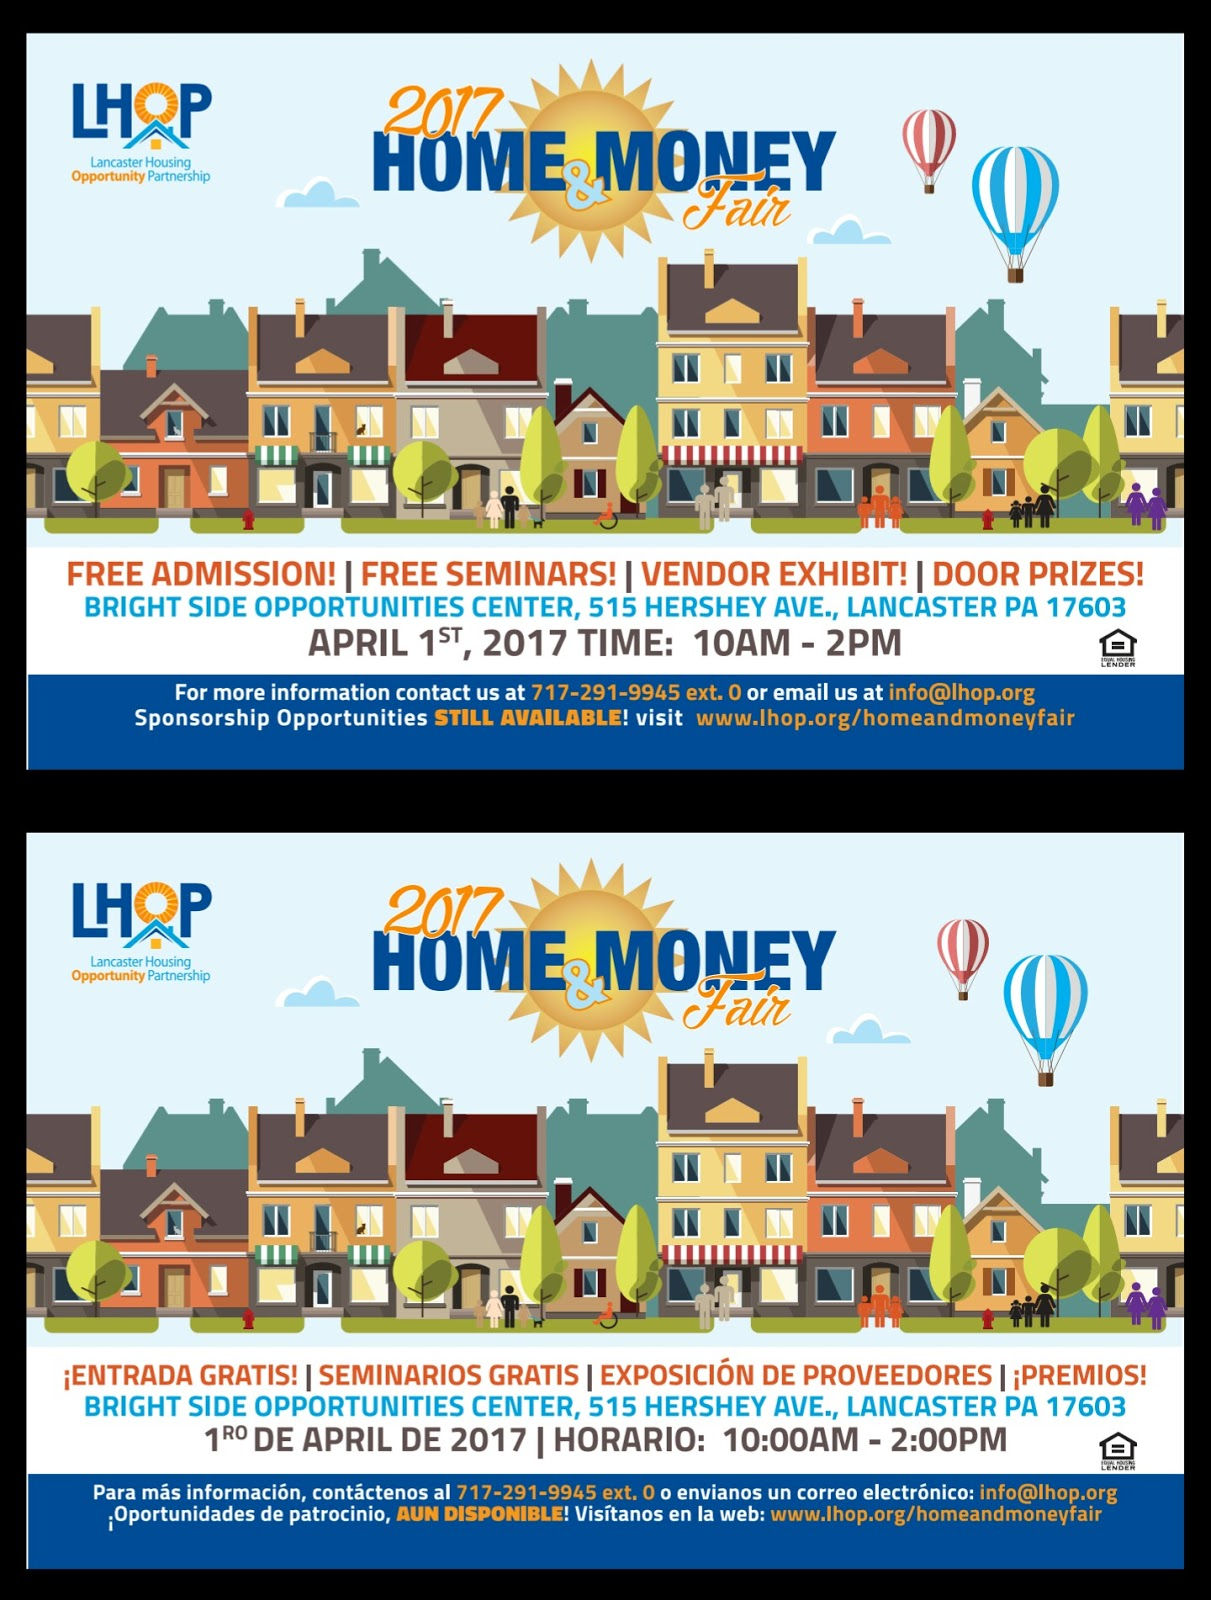 The lancaster housing opportunity partnership lhop home money fair will be held on april 1 at bright side opportunities center 515 hershey avenue